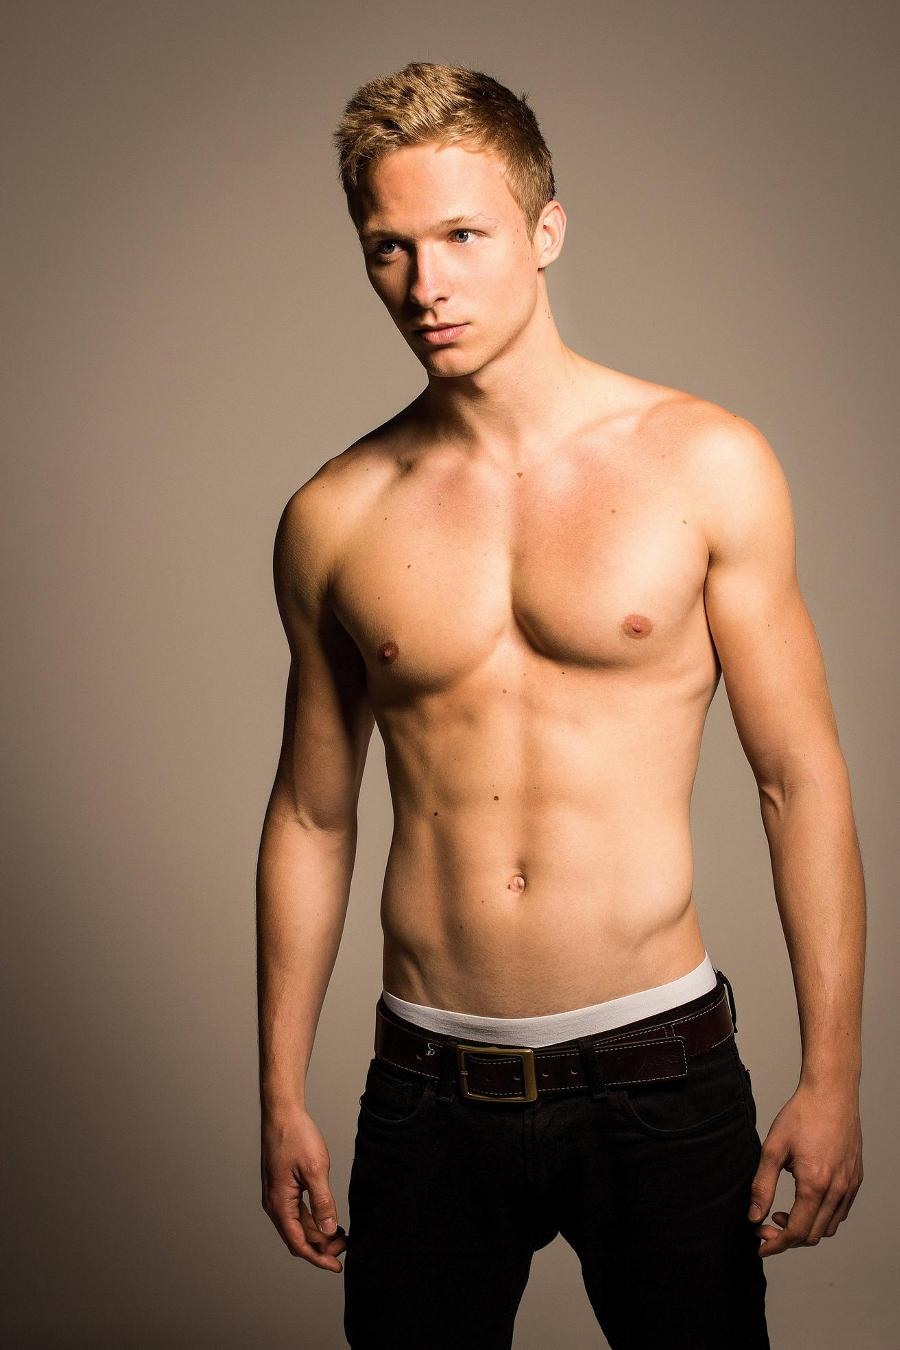 The Stars Come Out To Play: Will Tudor - Shirtless Photoshoot